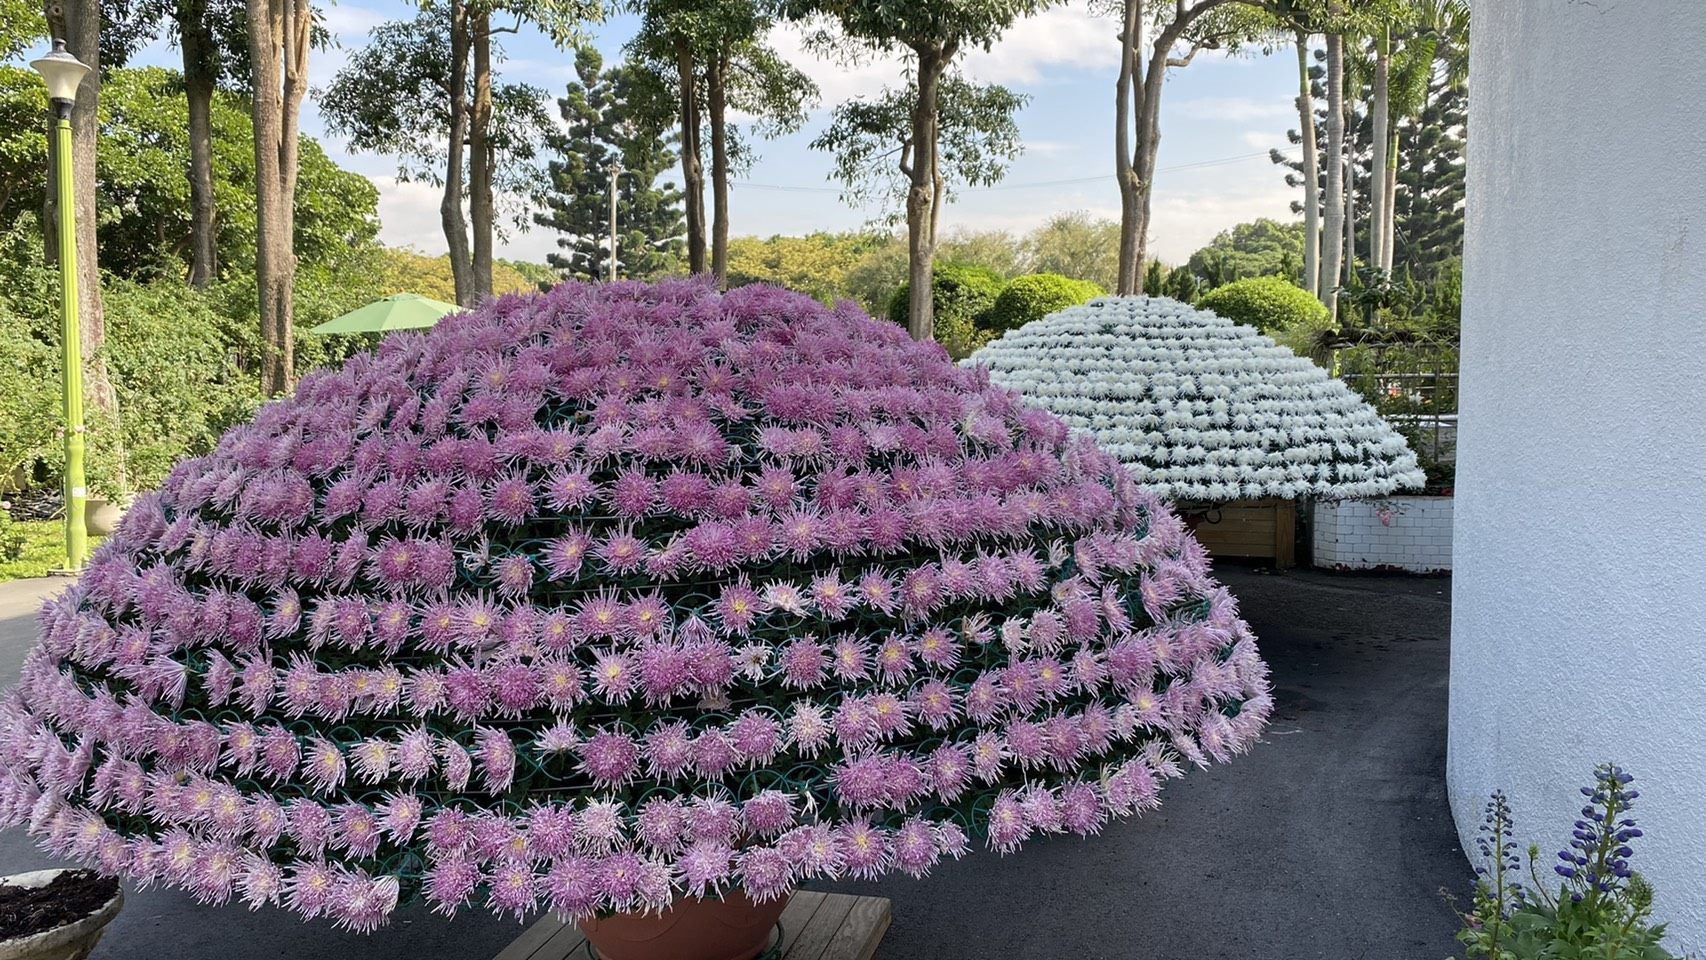 Football Chrysanthemum at Taipei Rose Garden